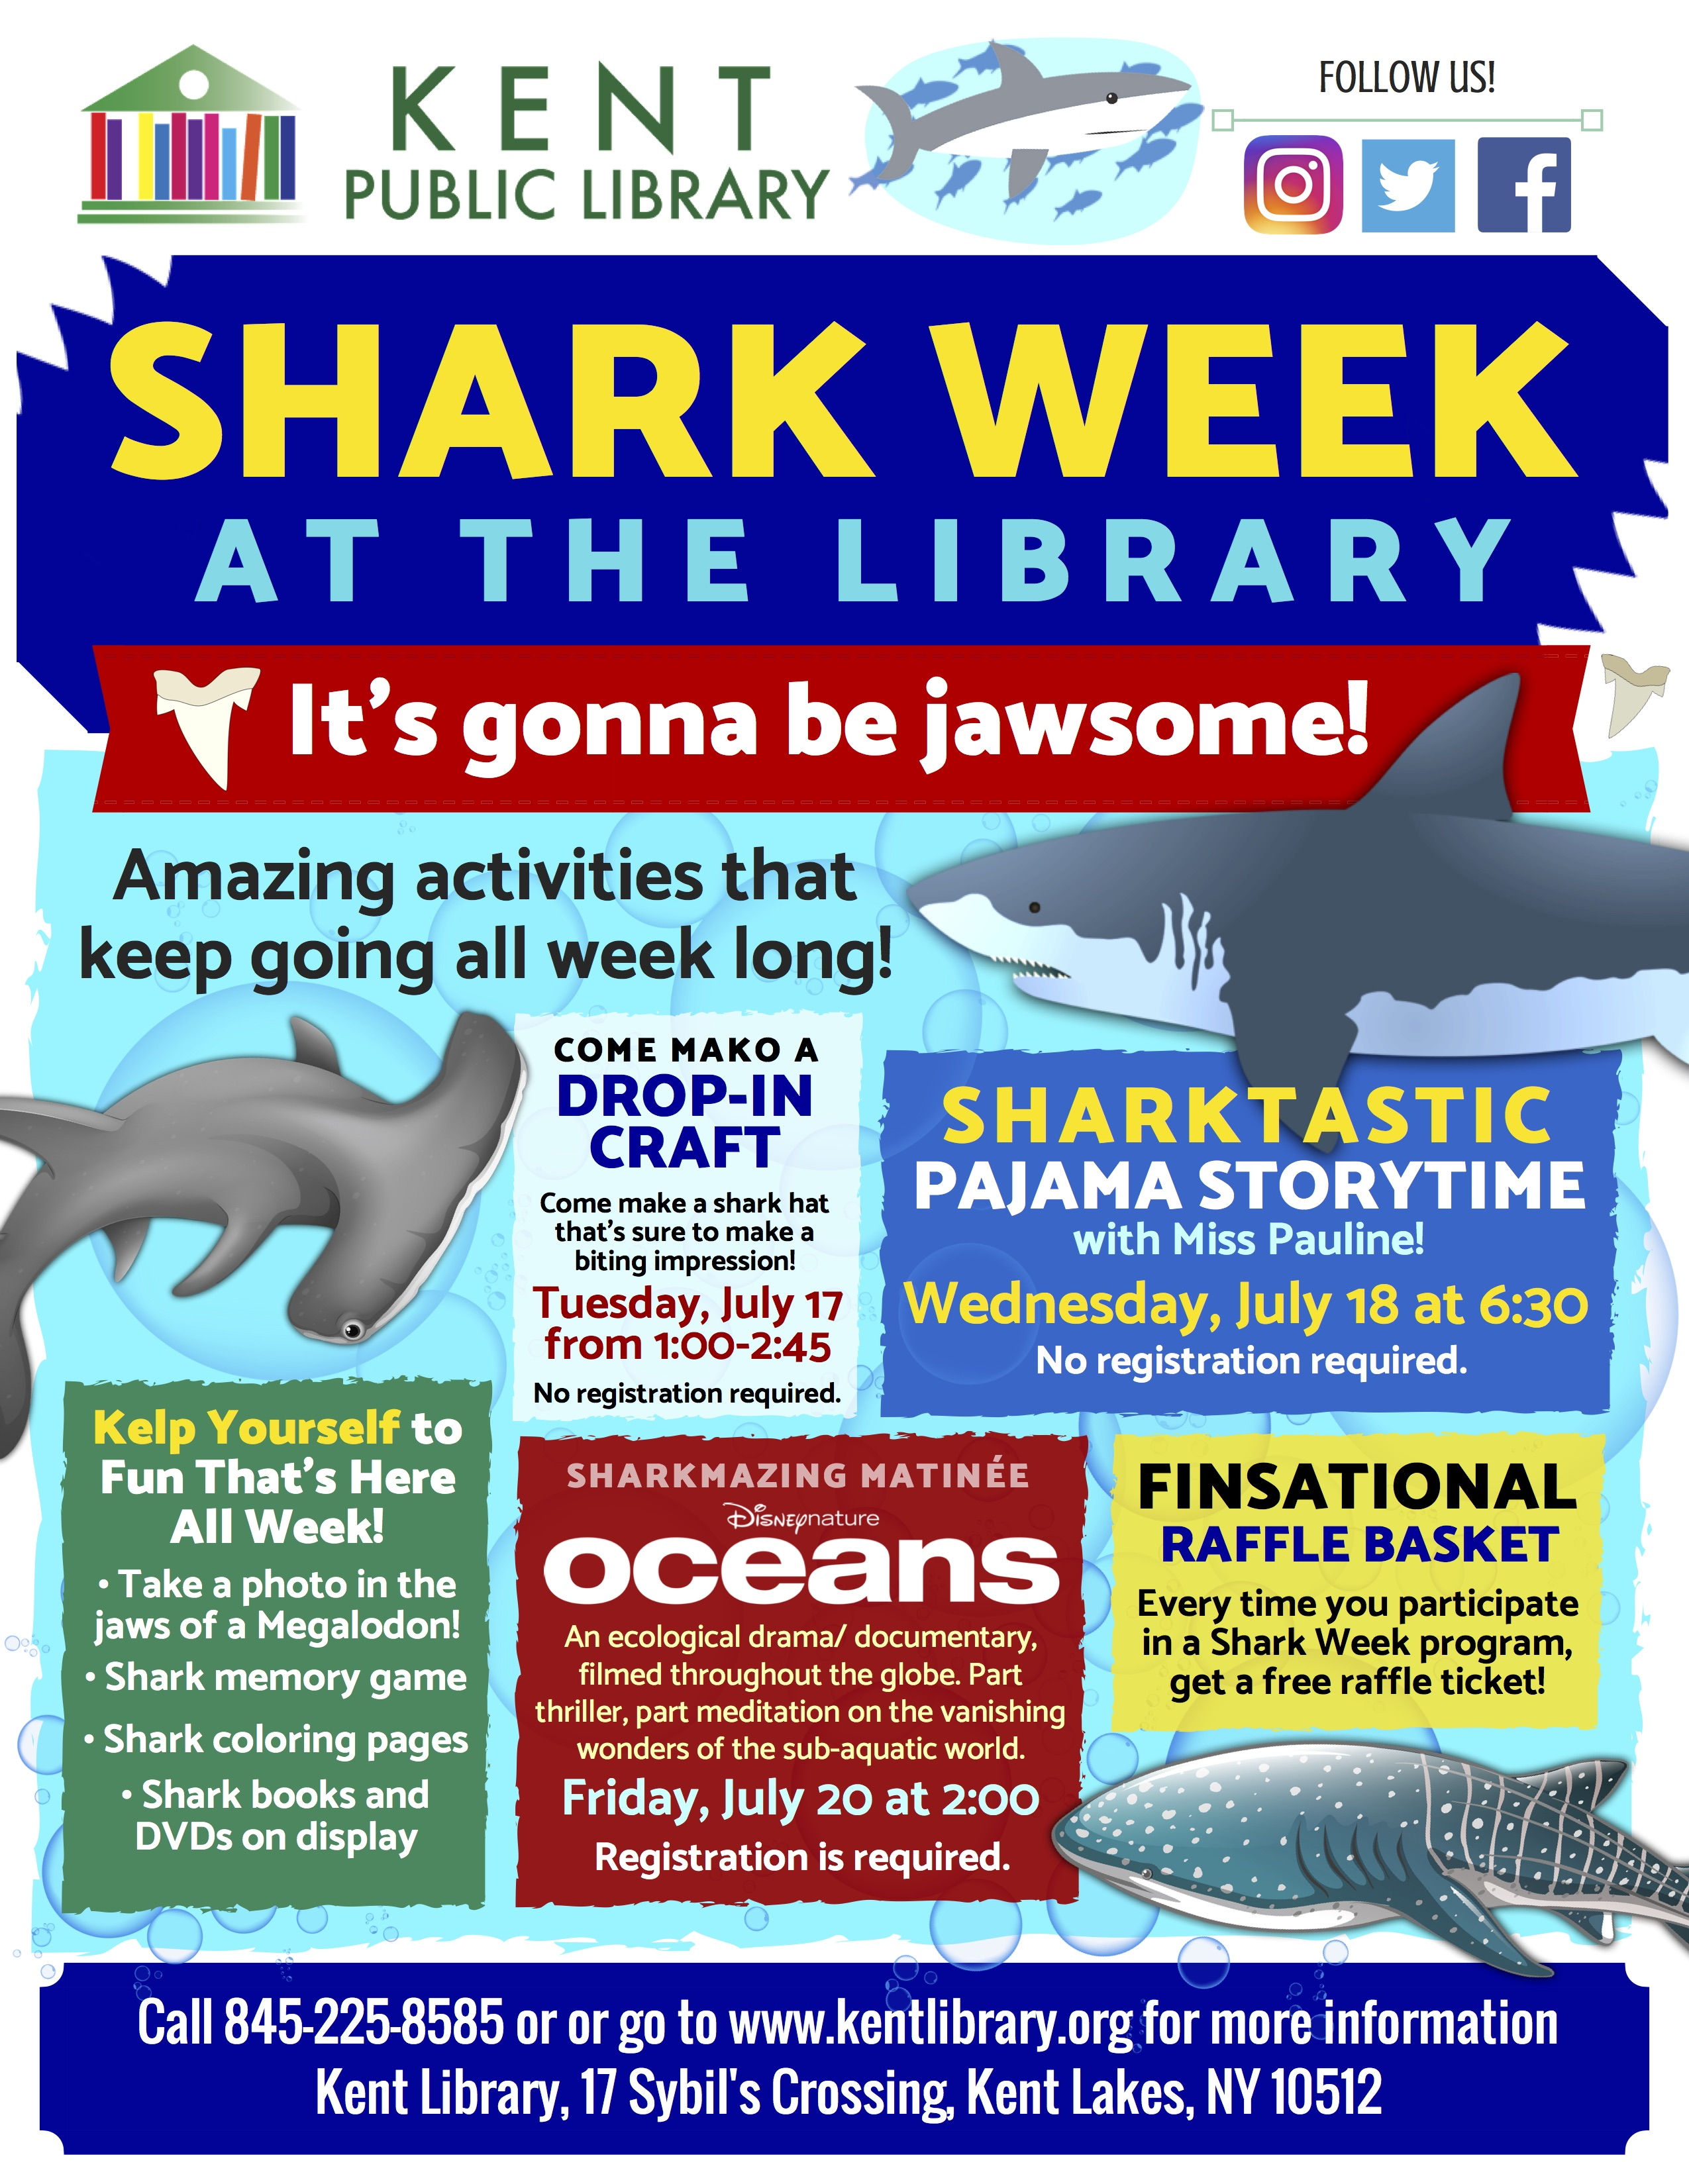 SHARK WEEK AT KENT LIBRARY: Story time, craft, movie, raffle